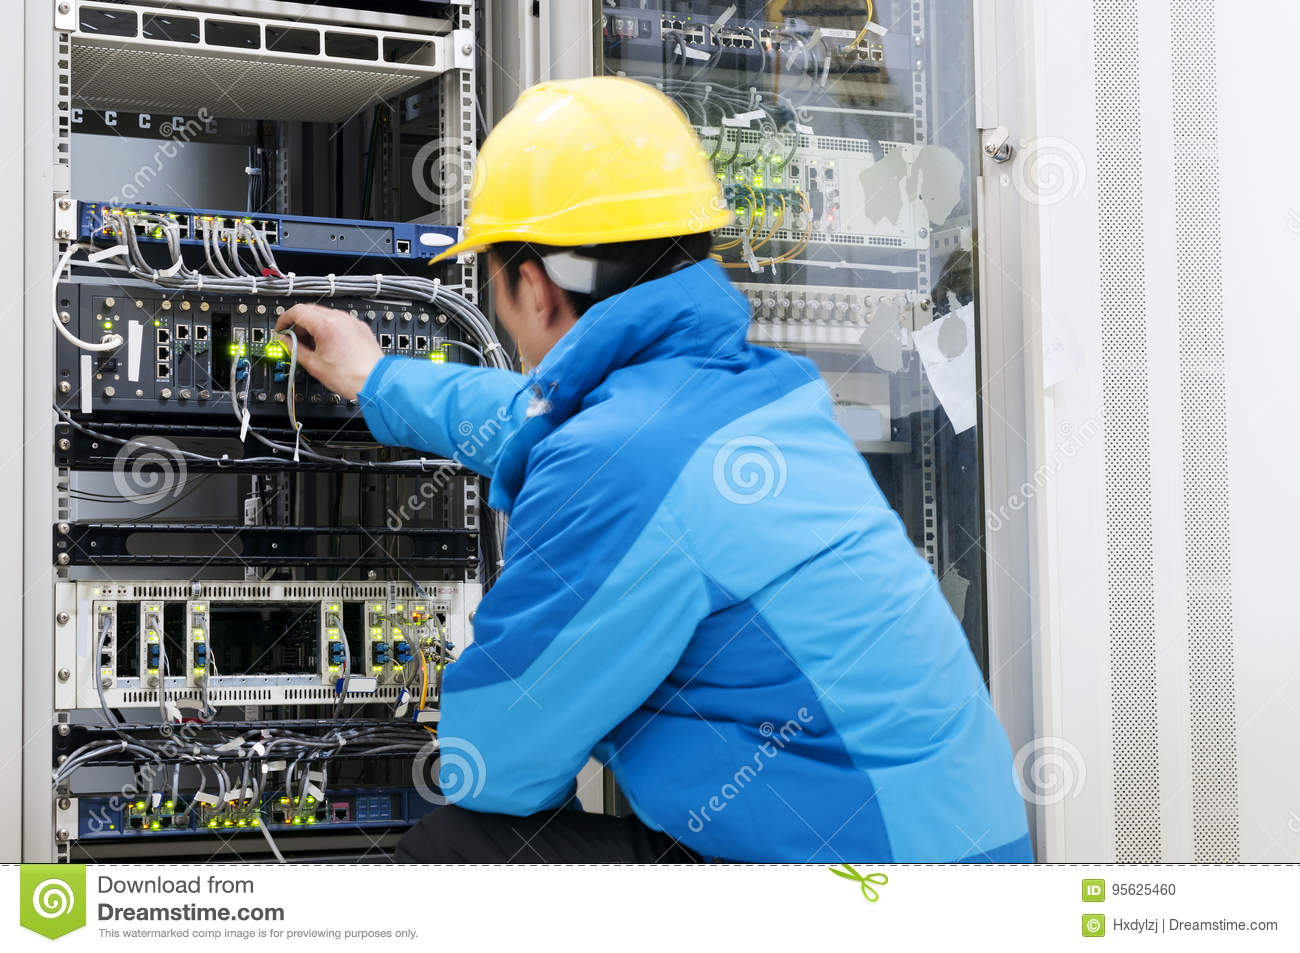 connecting network cables to switches